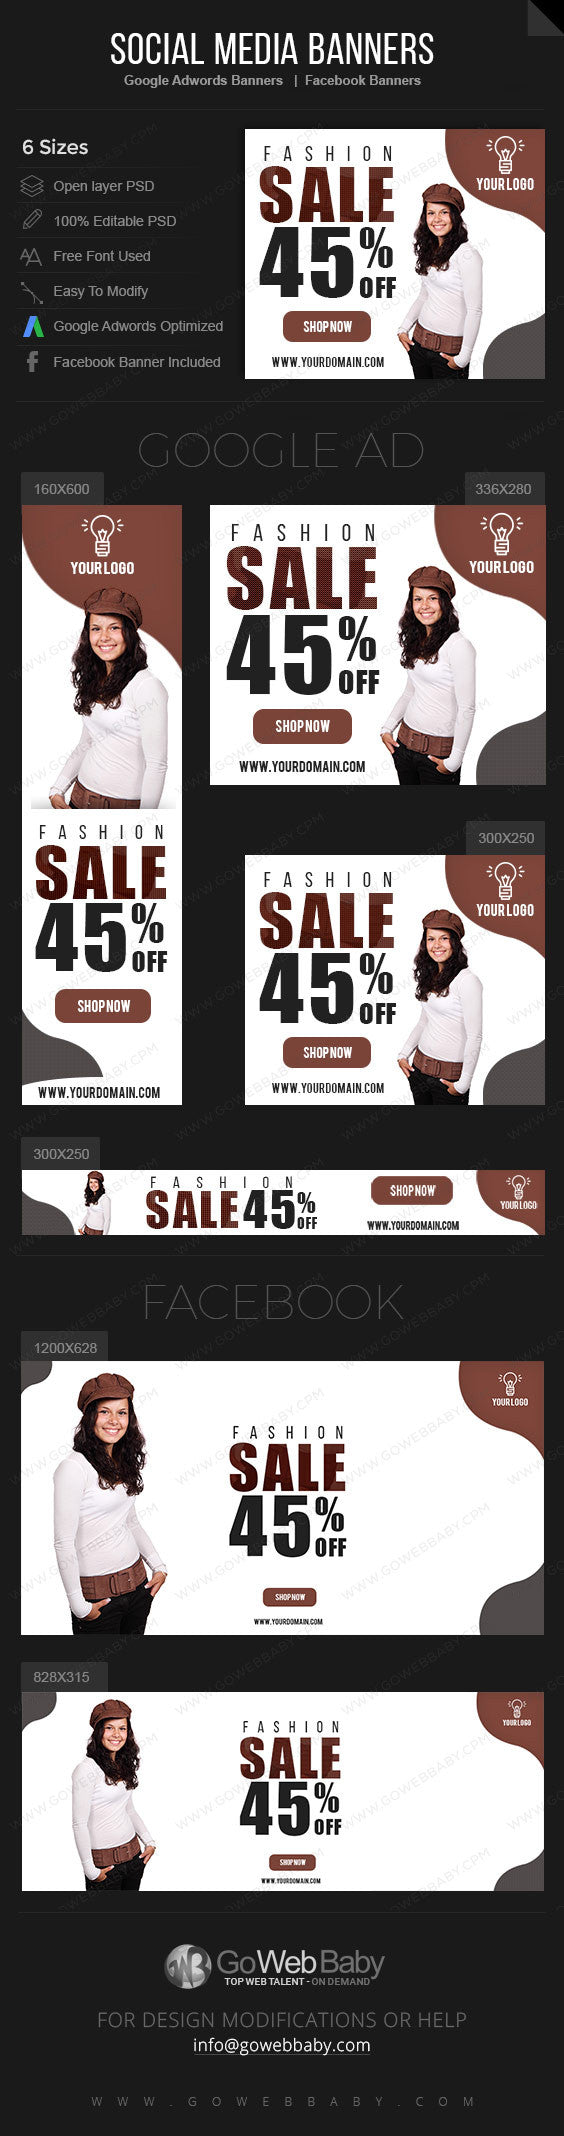 Google Adwords Display Banner with Facebook banners -Sale  Website Marketing - GoWebBaby.Com